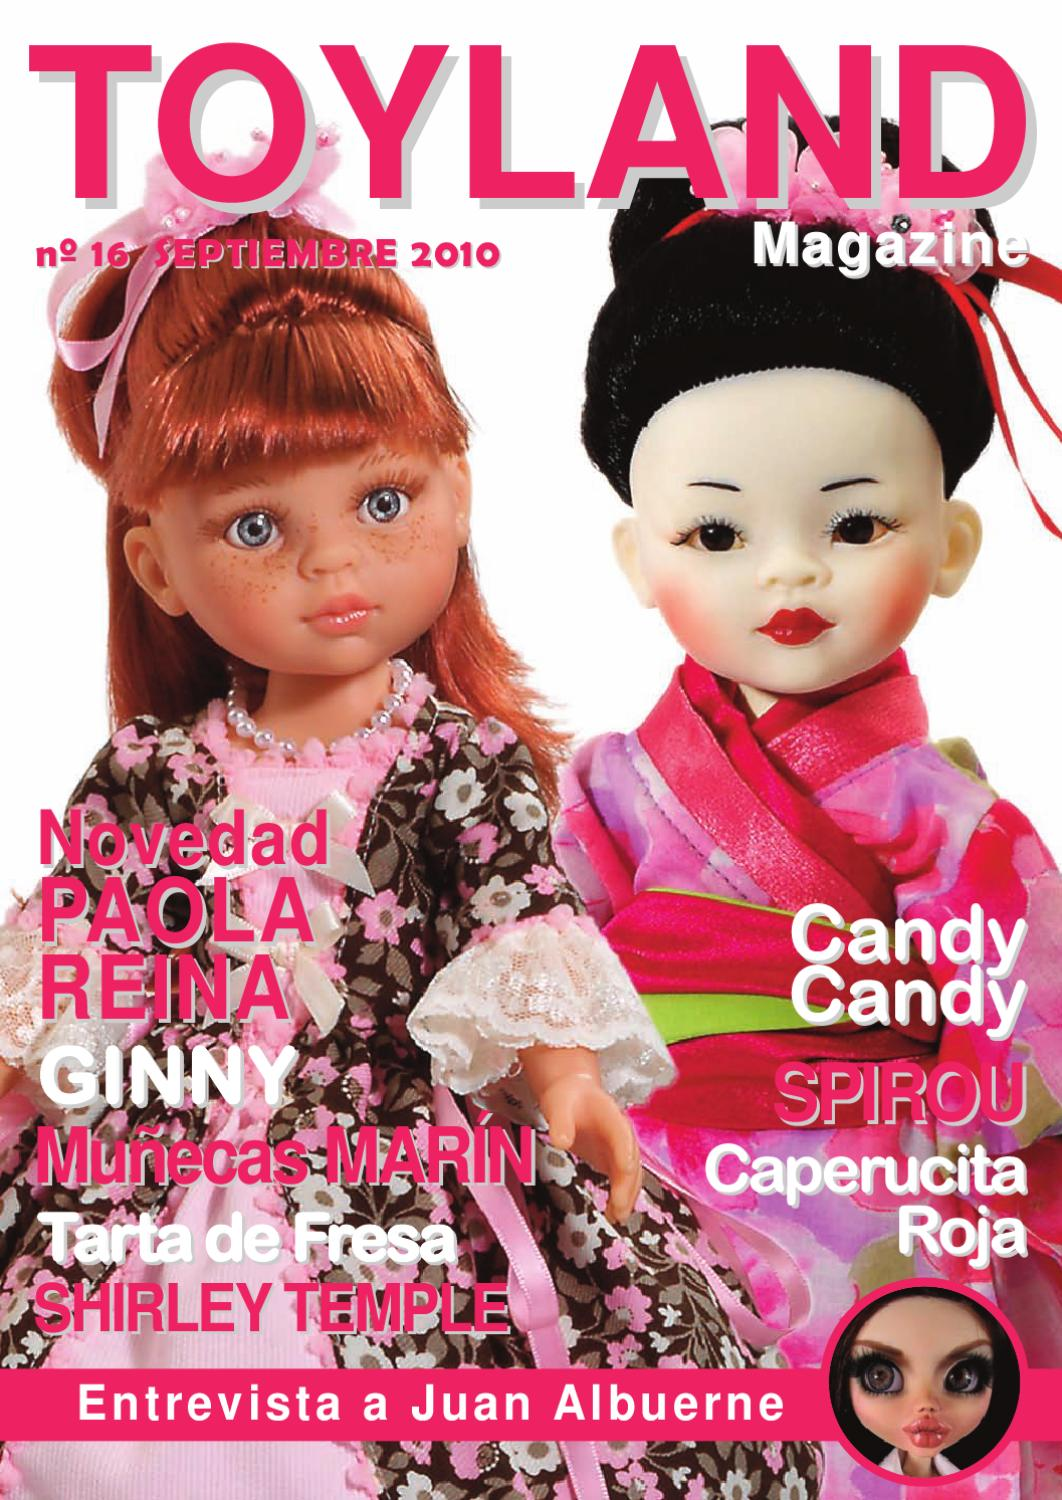 Toyland Magazine - Septiembre 2010 by Lucas Wainer - issuu